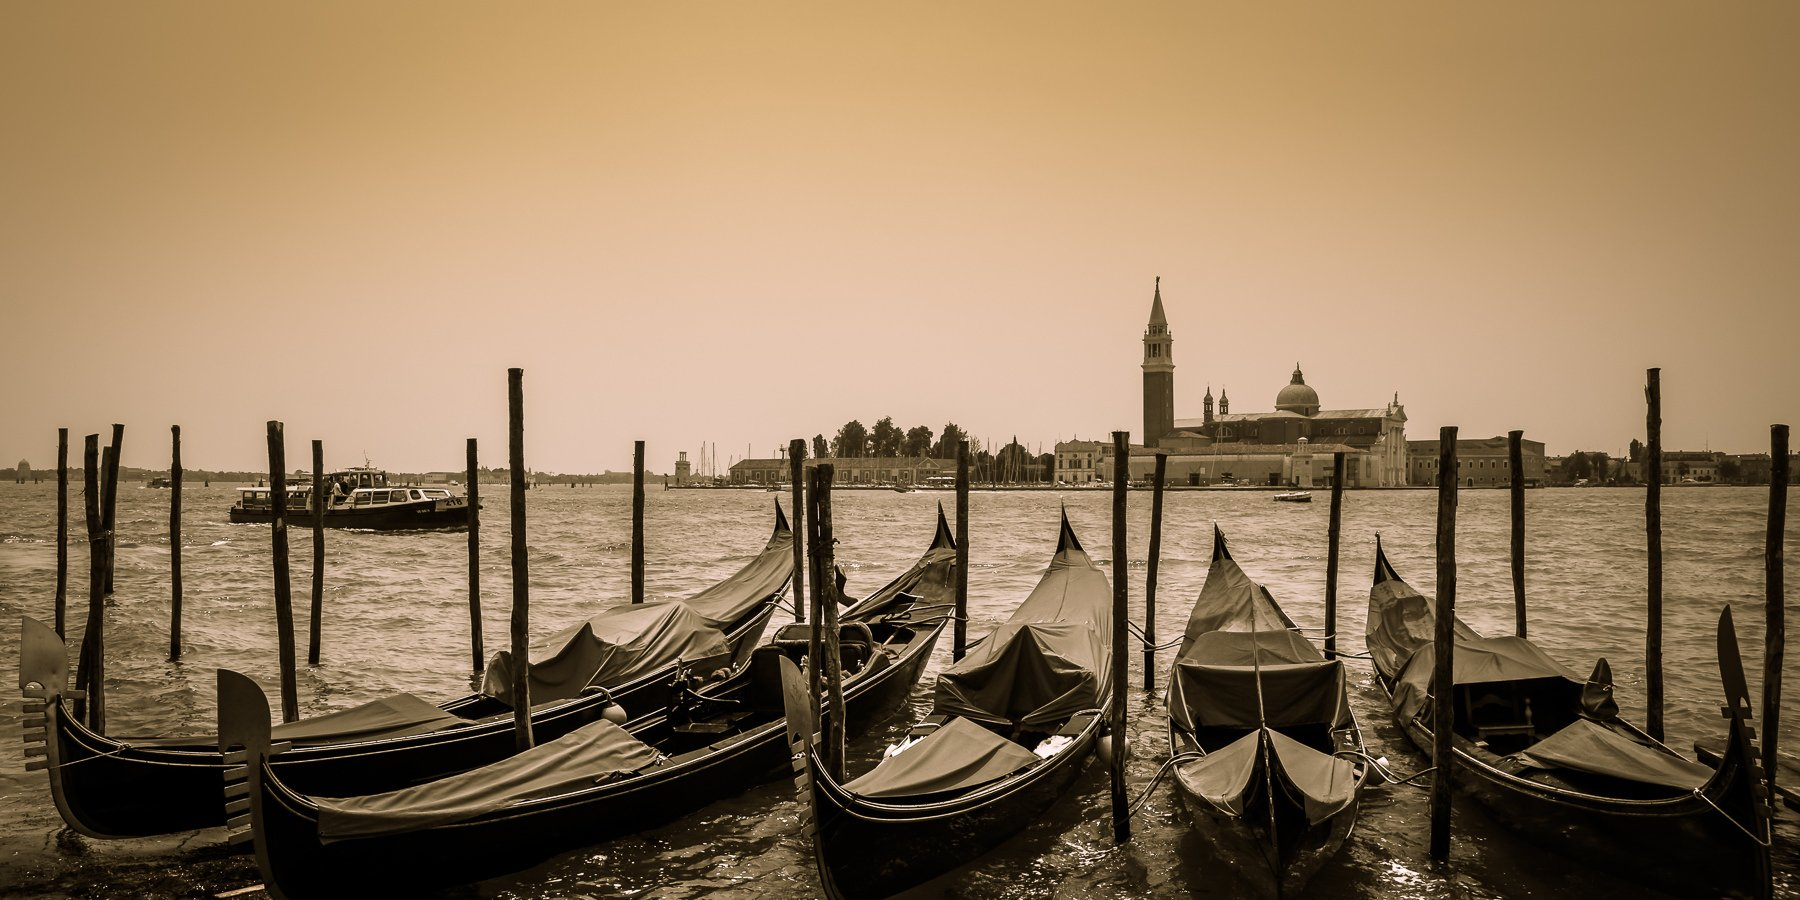 Gondolas tied up looking across the water to San Giorgio Maggiore in Venice, Italy